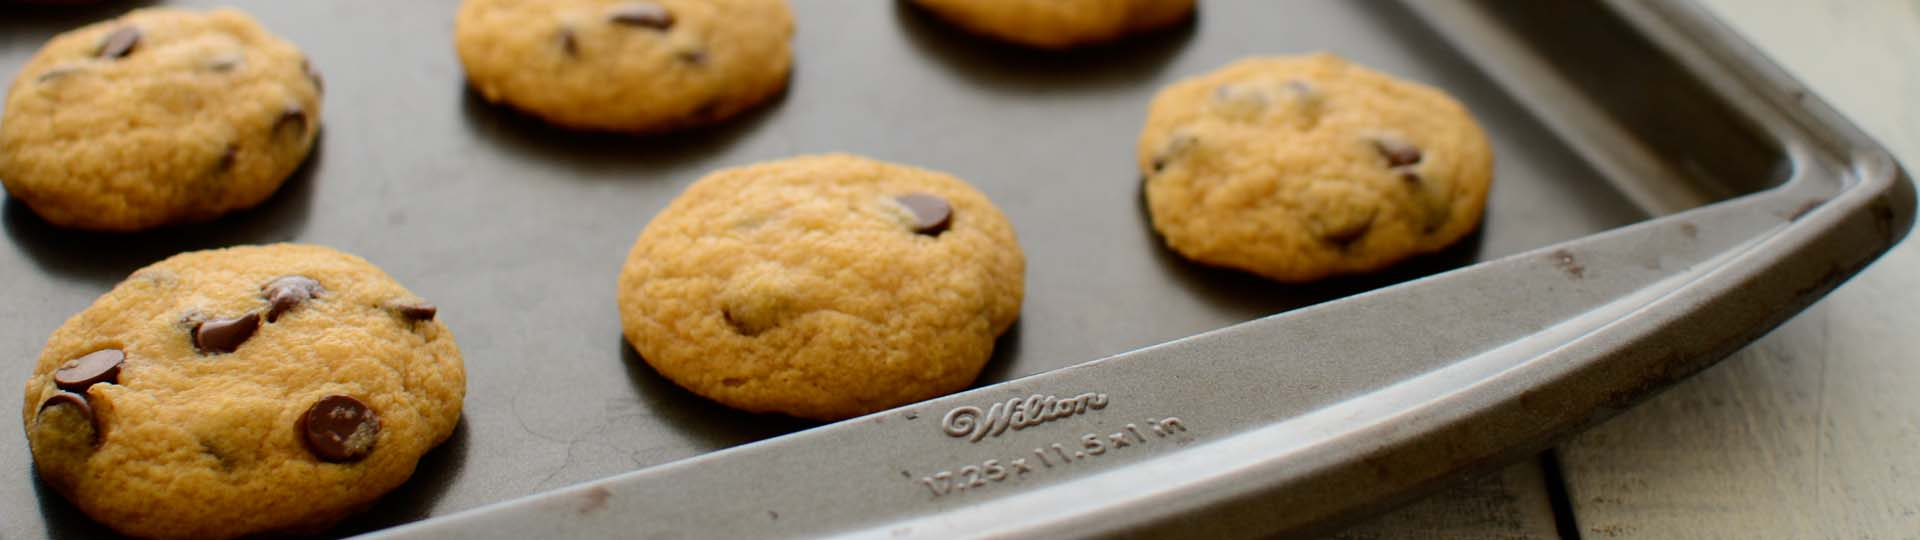 Cookies at Lane End Conference Centre website